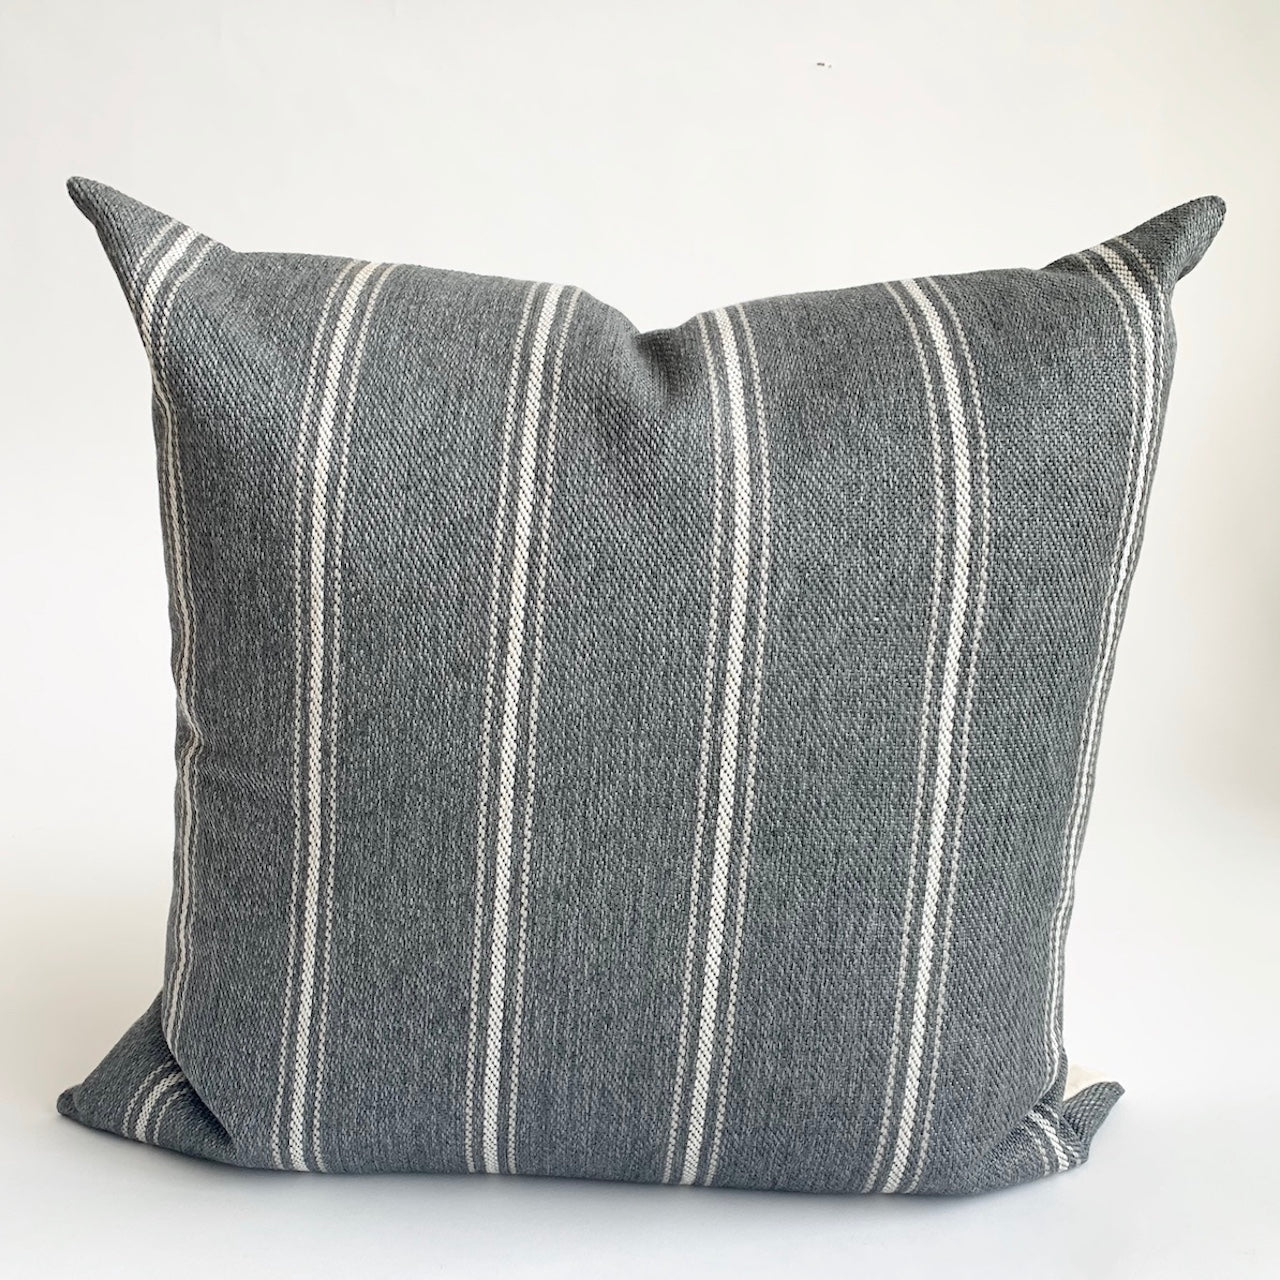 Colby Pillow $115